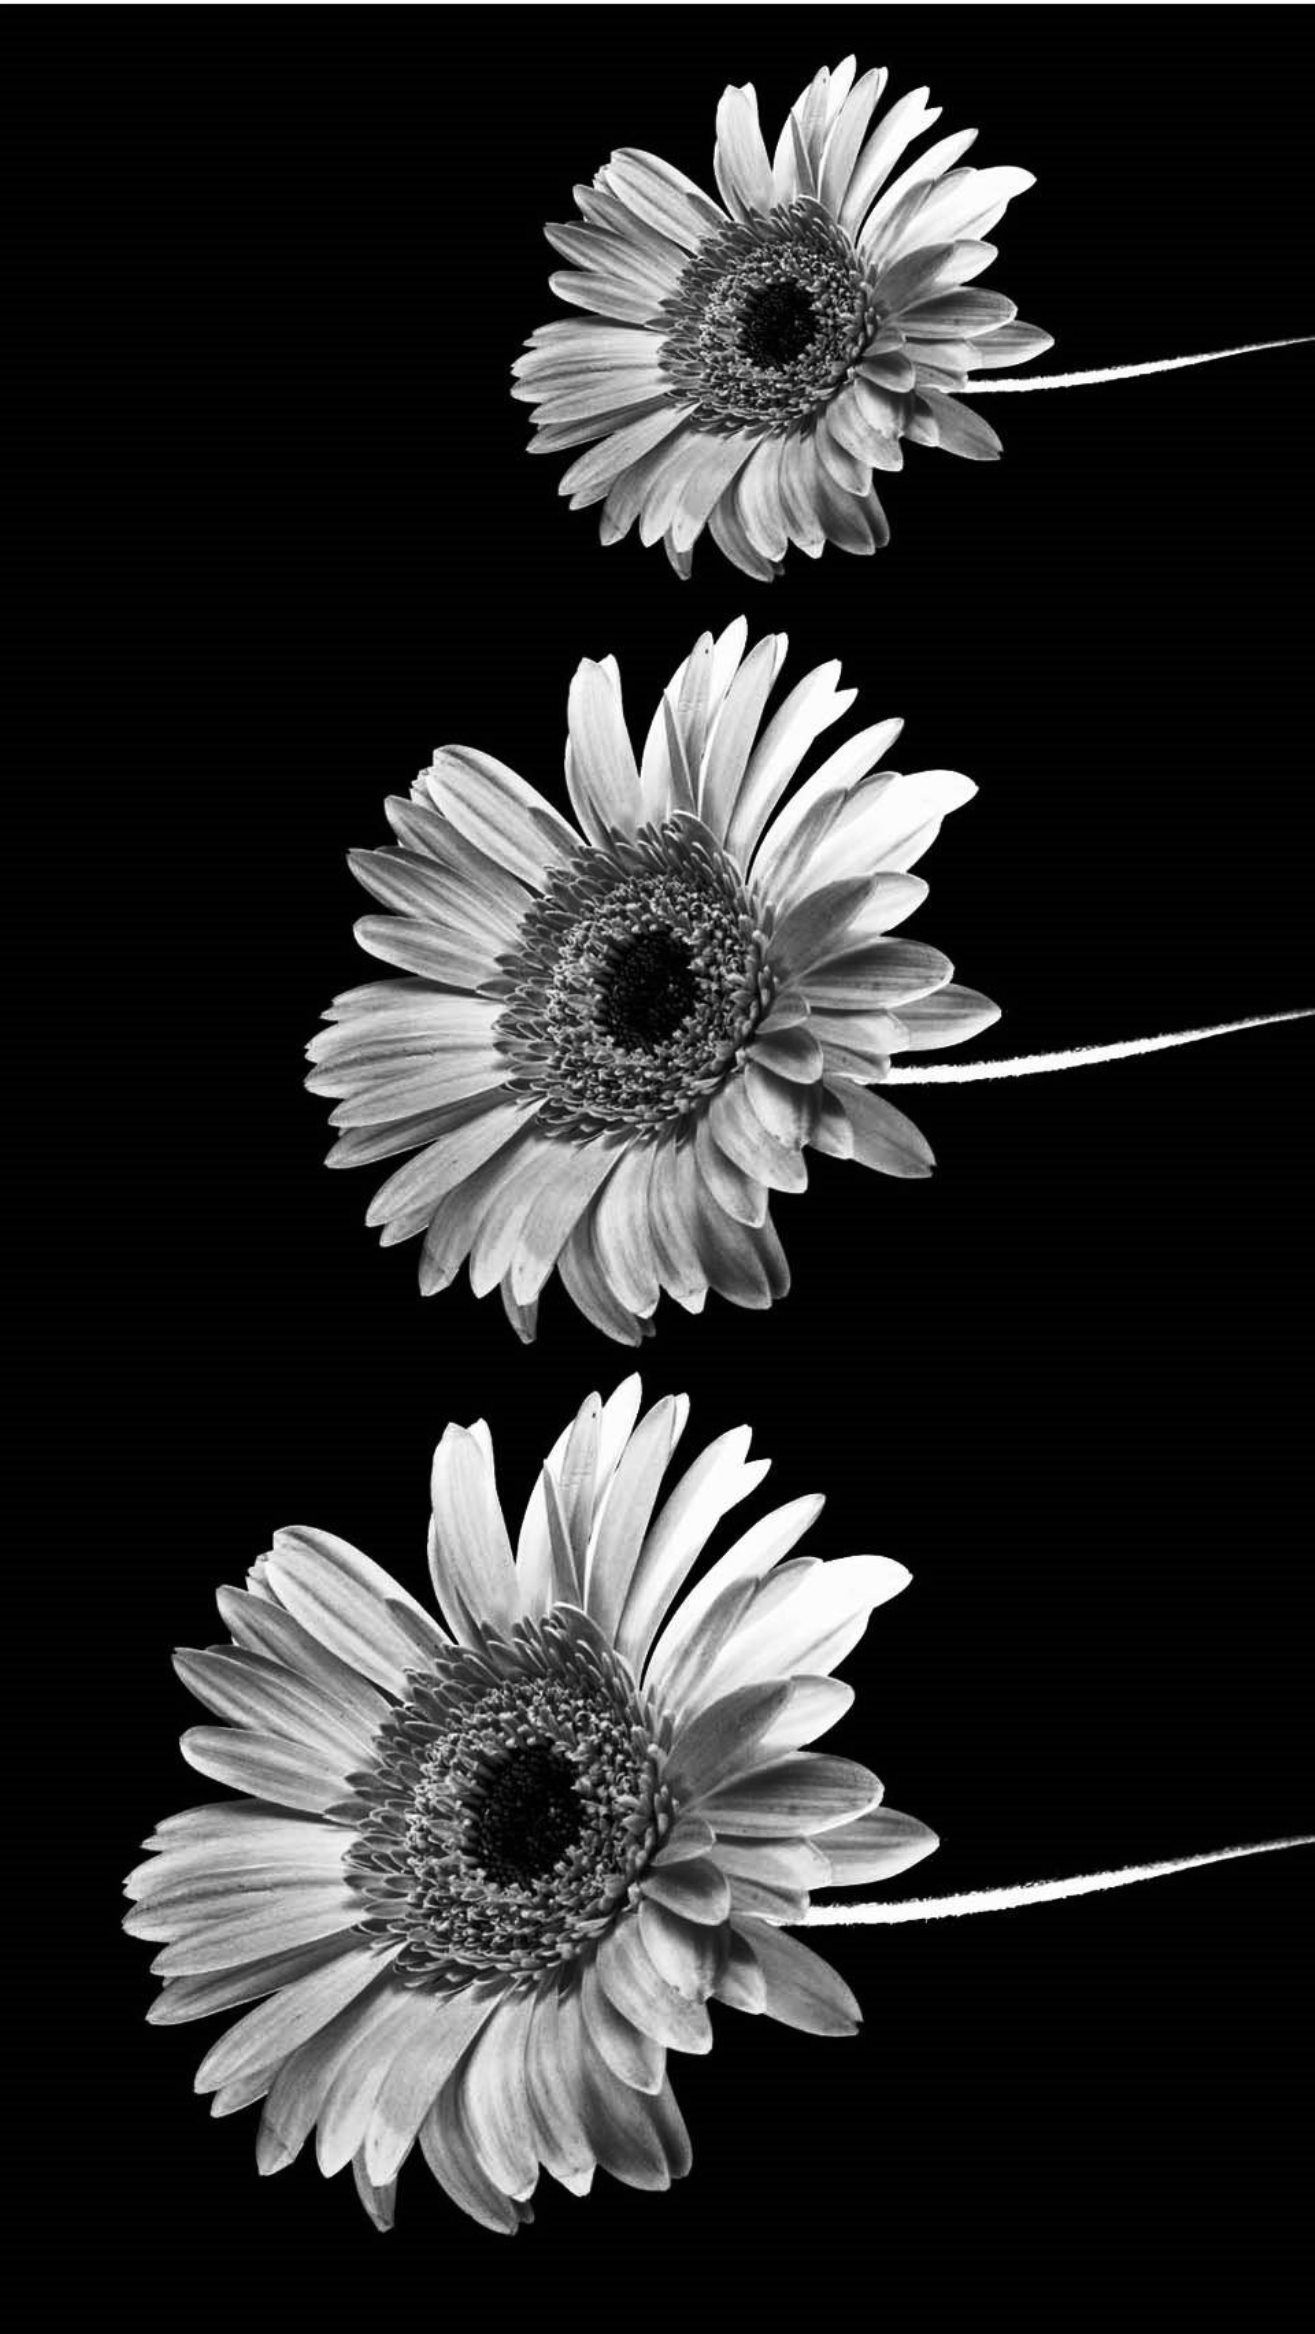 Black And White Tumblr Iphone Wallpapers Top Free Black And White Tumblr Iphone Backgrounds Wallpaperaccess